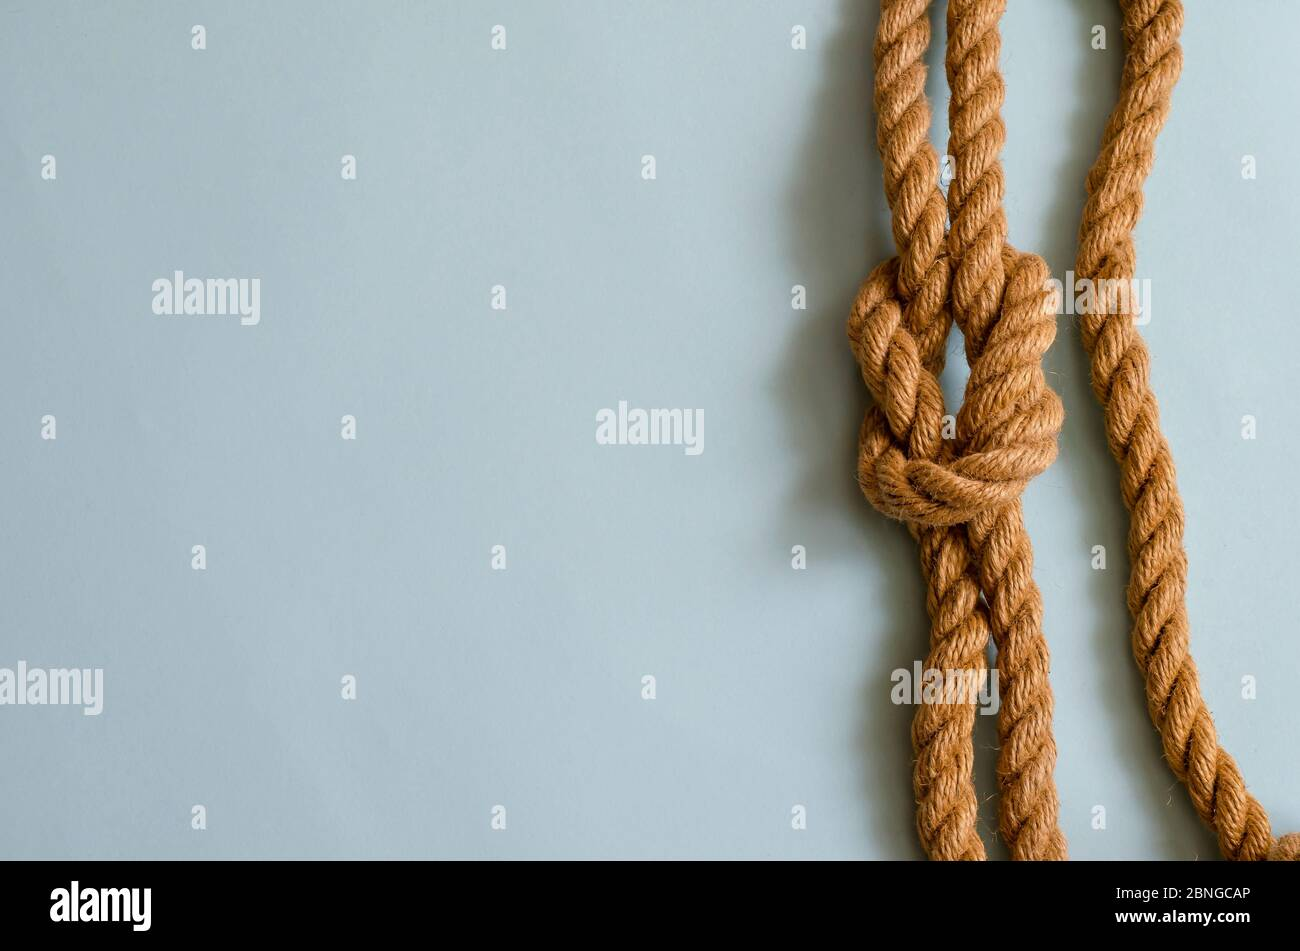 Hemp Rope With A Nautical Knot On A Light Blue Background Knotted Natural Rope Sea Travel Beach Vacation Fishing Multitask Background For Design Stock Photo Alamy